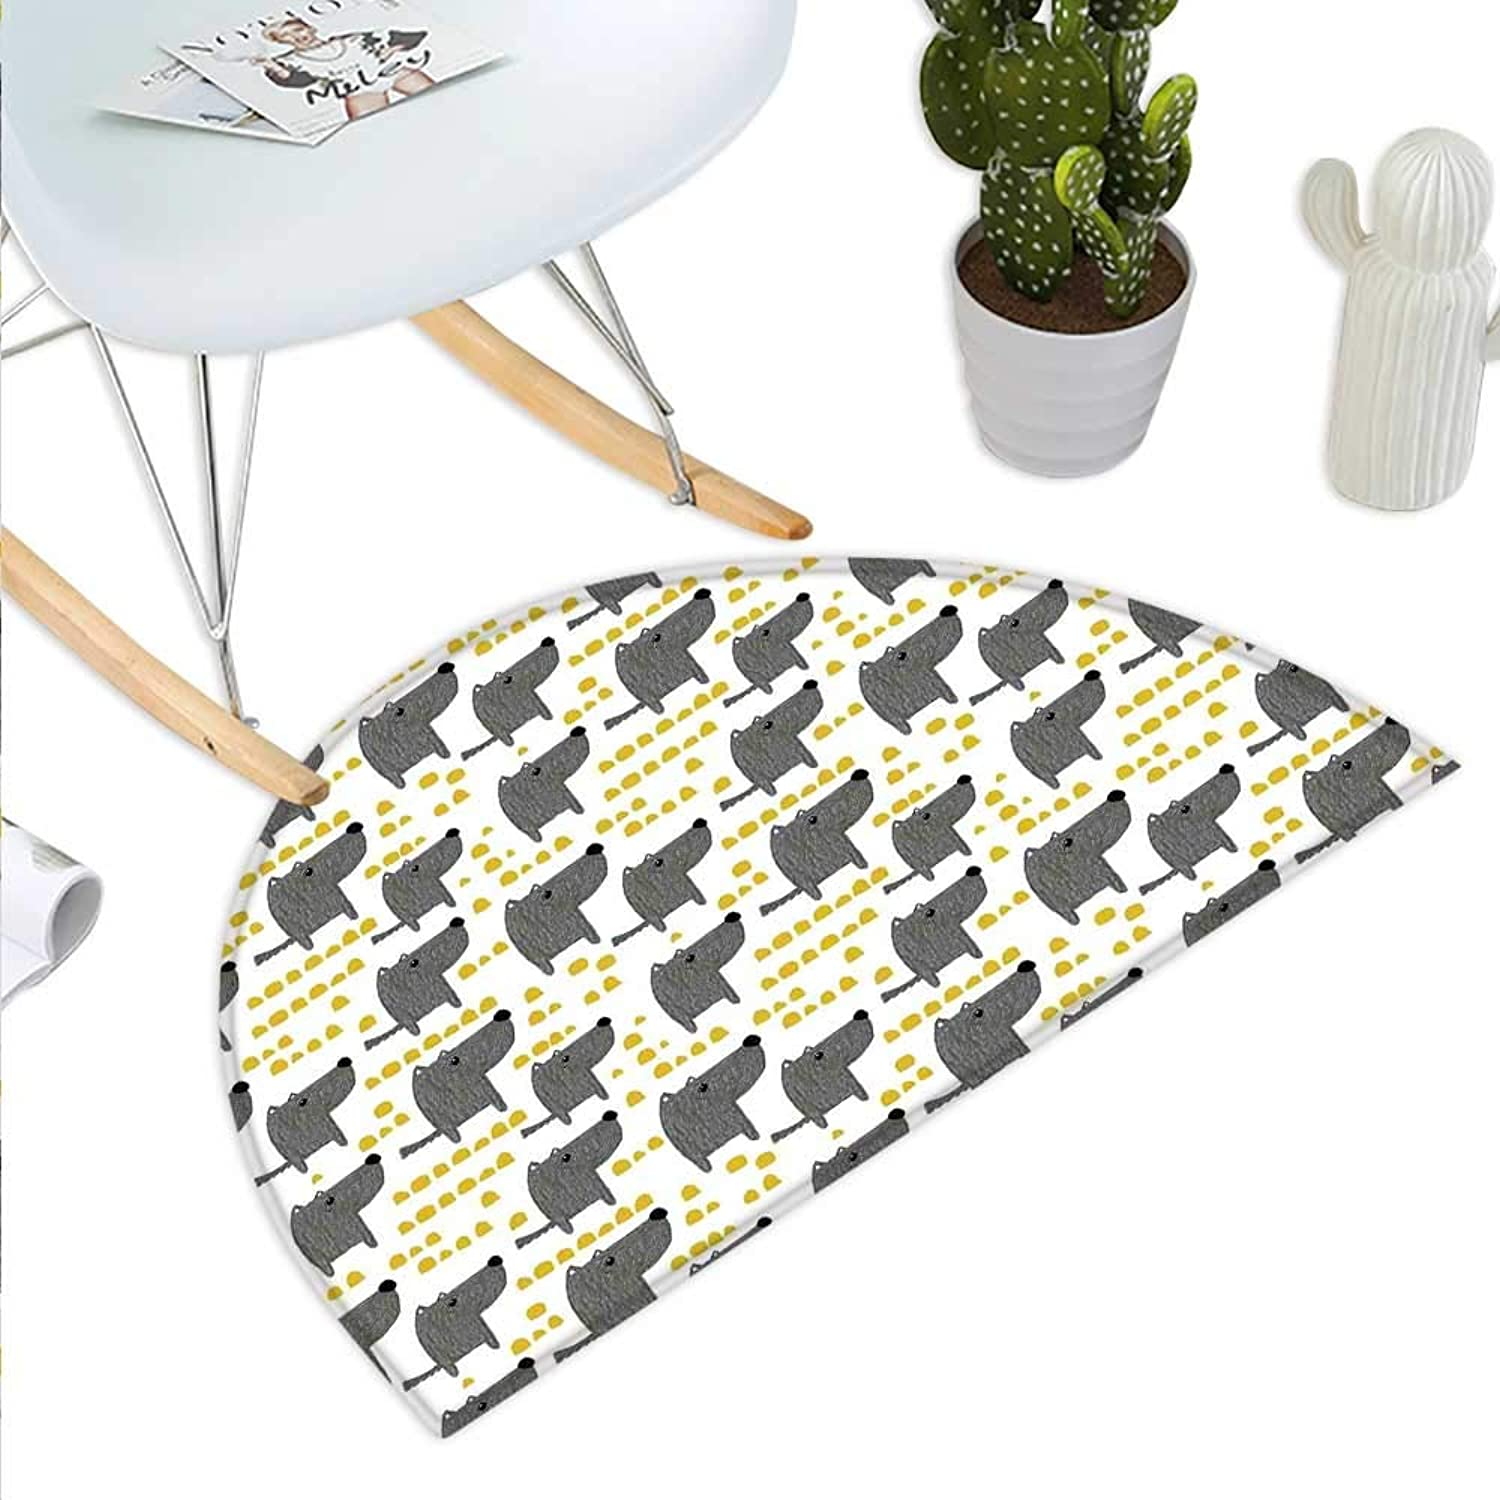 Dog Semicircle Doormat Sketch Style Canine with Abstract Yellow Toned Dots Greyscale Cartoon Pets Halfmoon doormats H 35.4  xD 53.1  Grey Marigold White